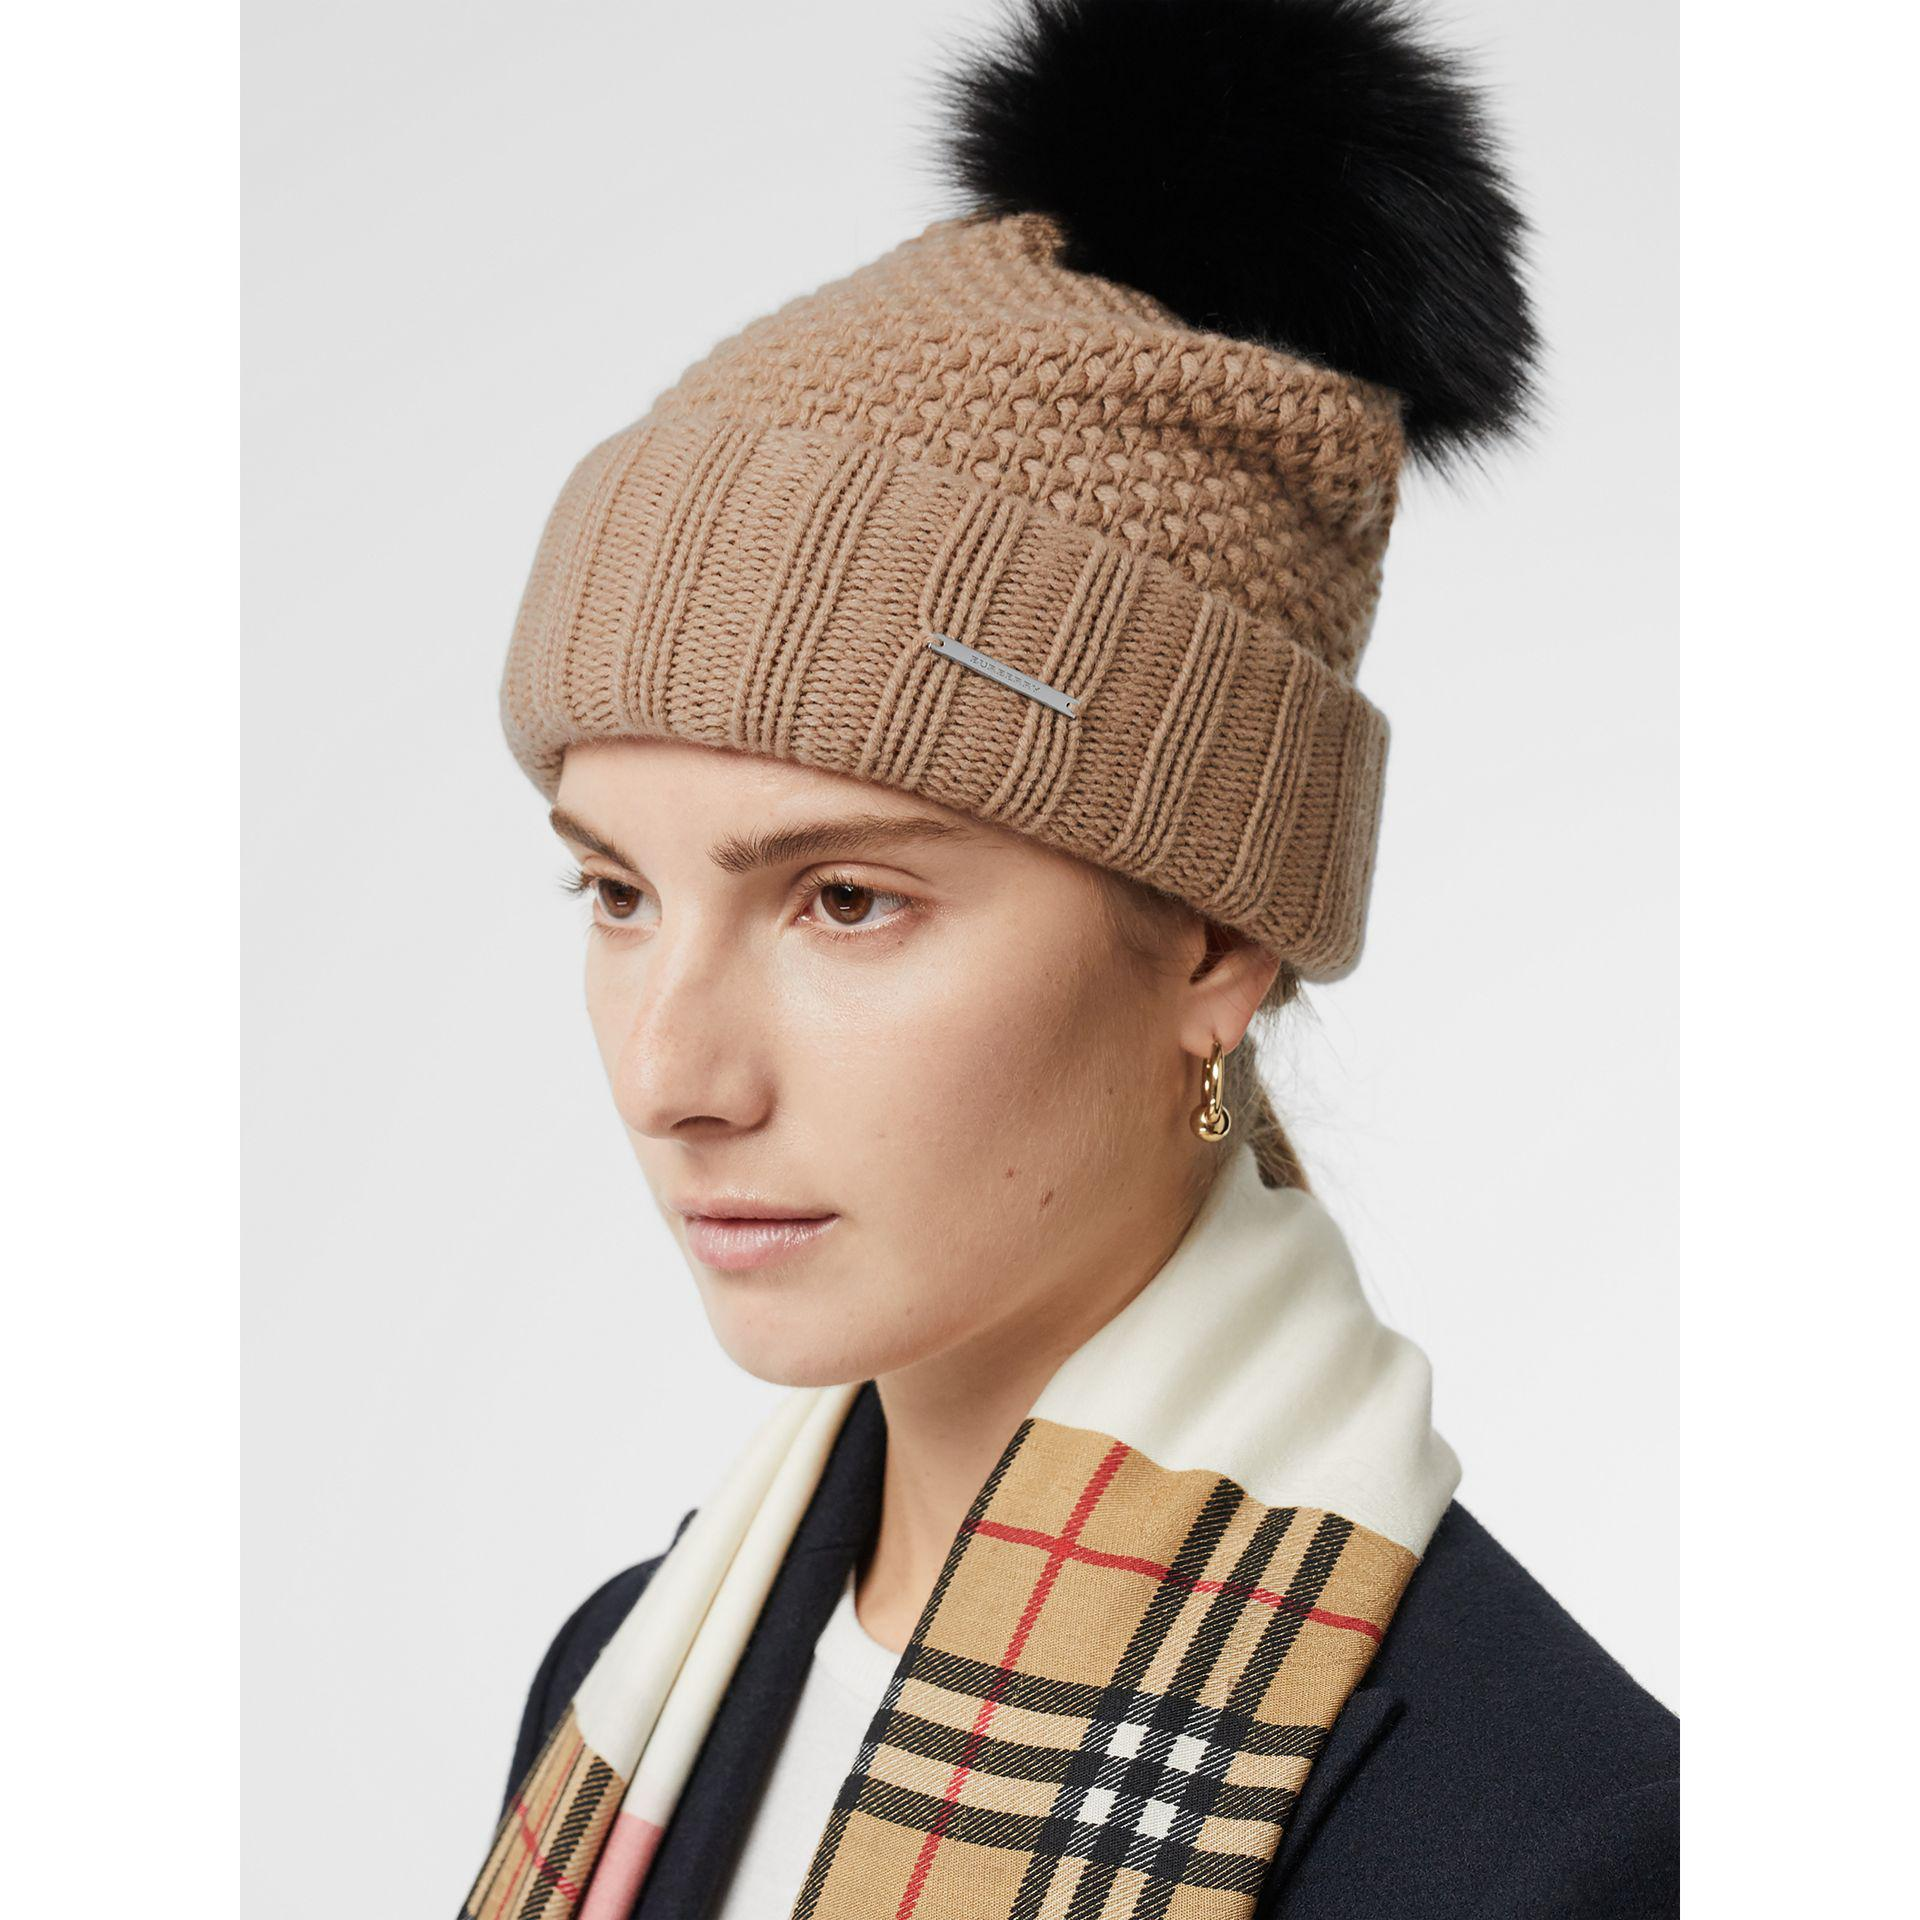 8b0da93950fd3 Burberry Fur Pom-pom Wool Cashmere Beanie in Natural - Lyst